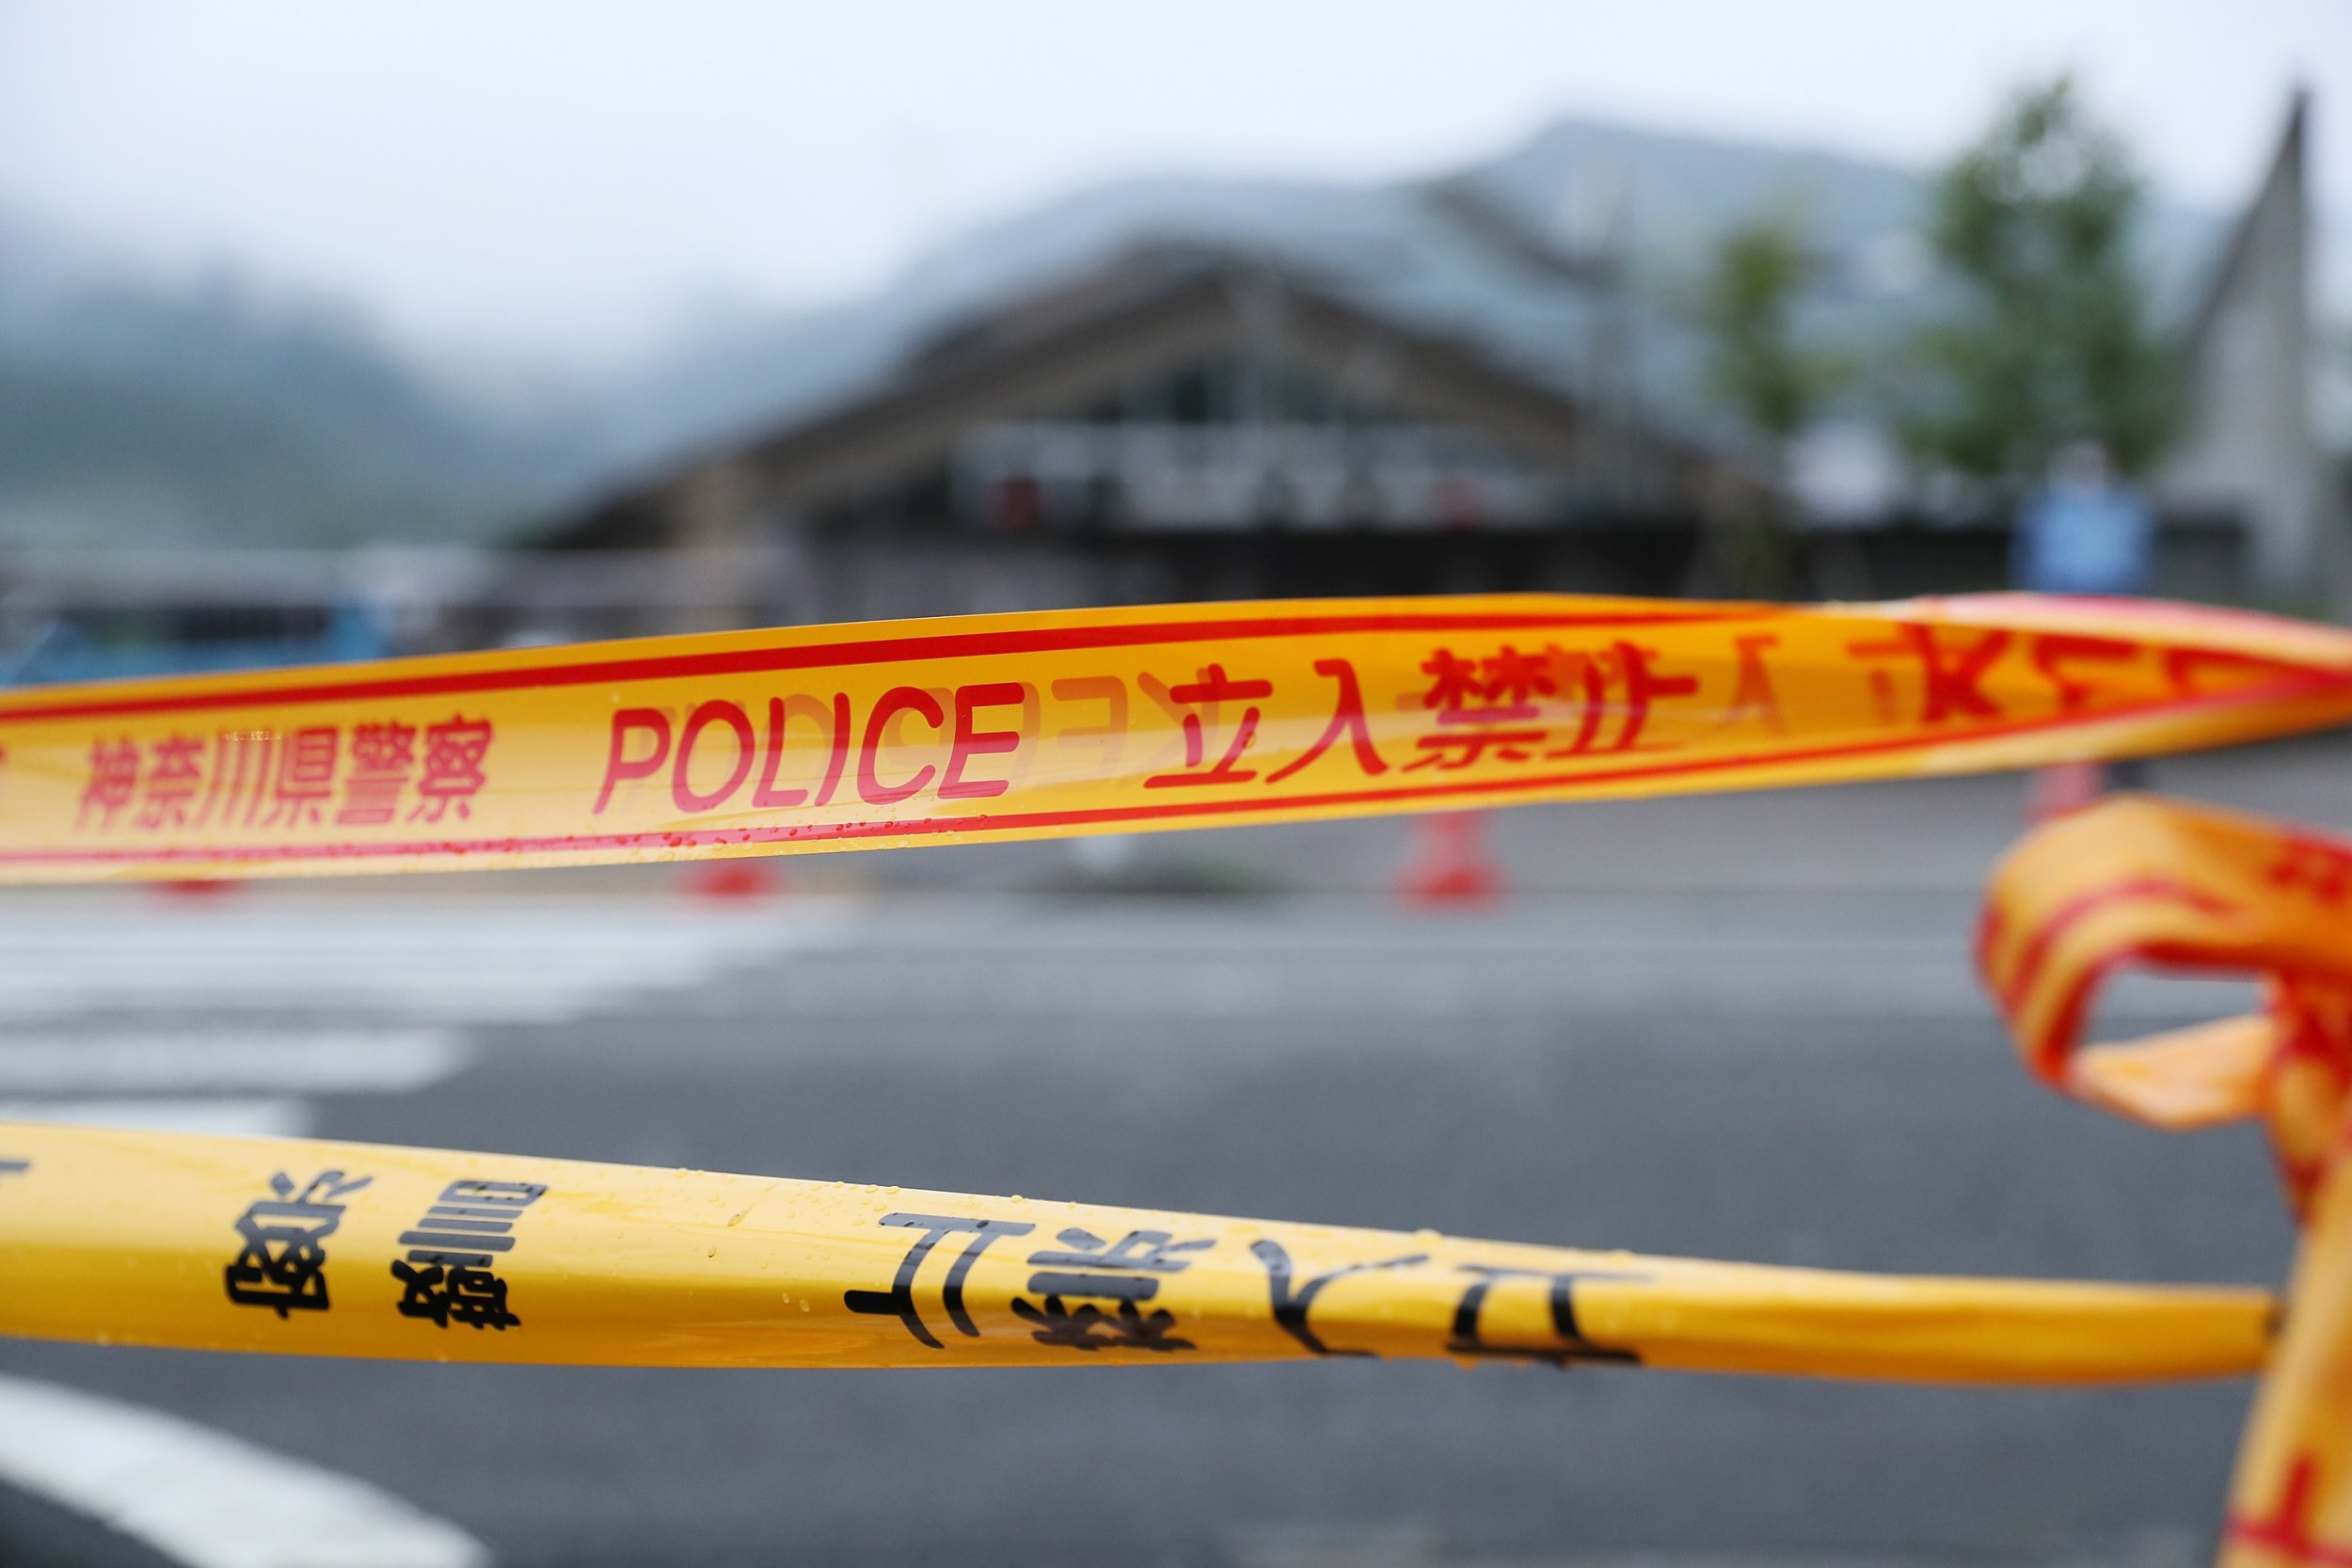 Six people found dead in mass killing at Japan tourist hotspot